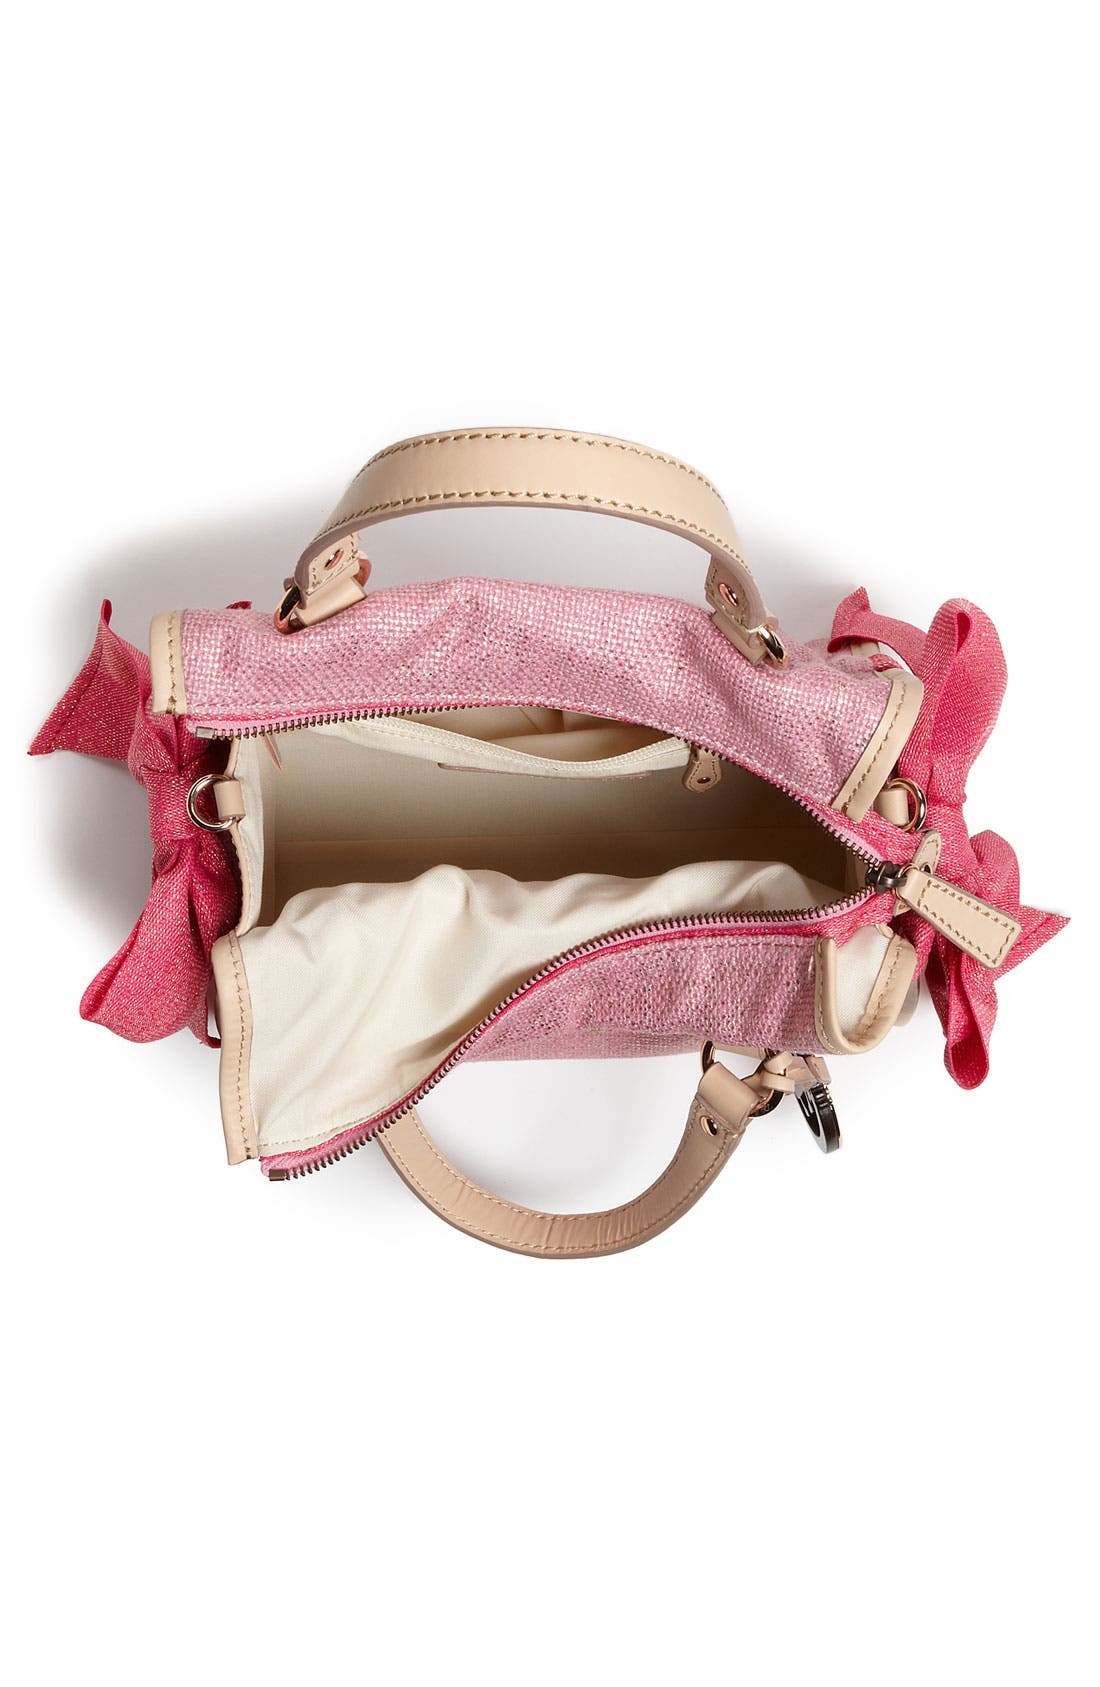 Alternate Image 3  - Juicy Couture 'Miss Daydreamer' Handbag